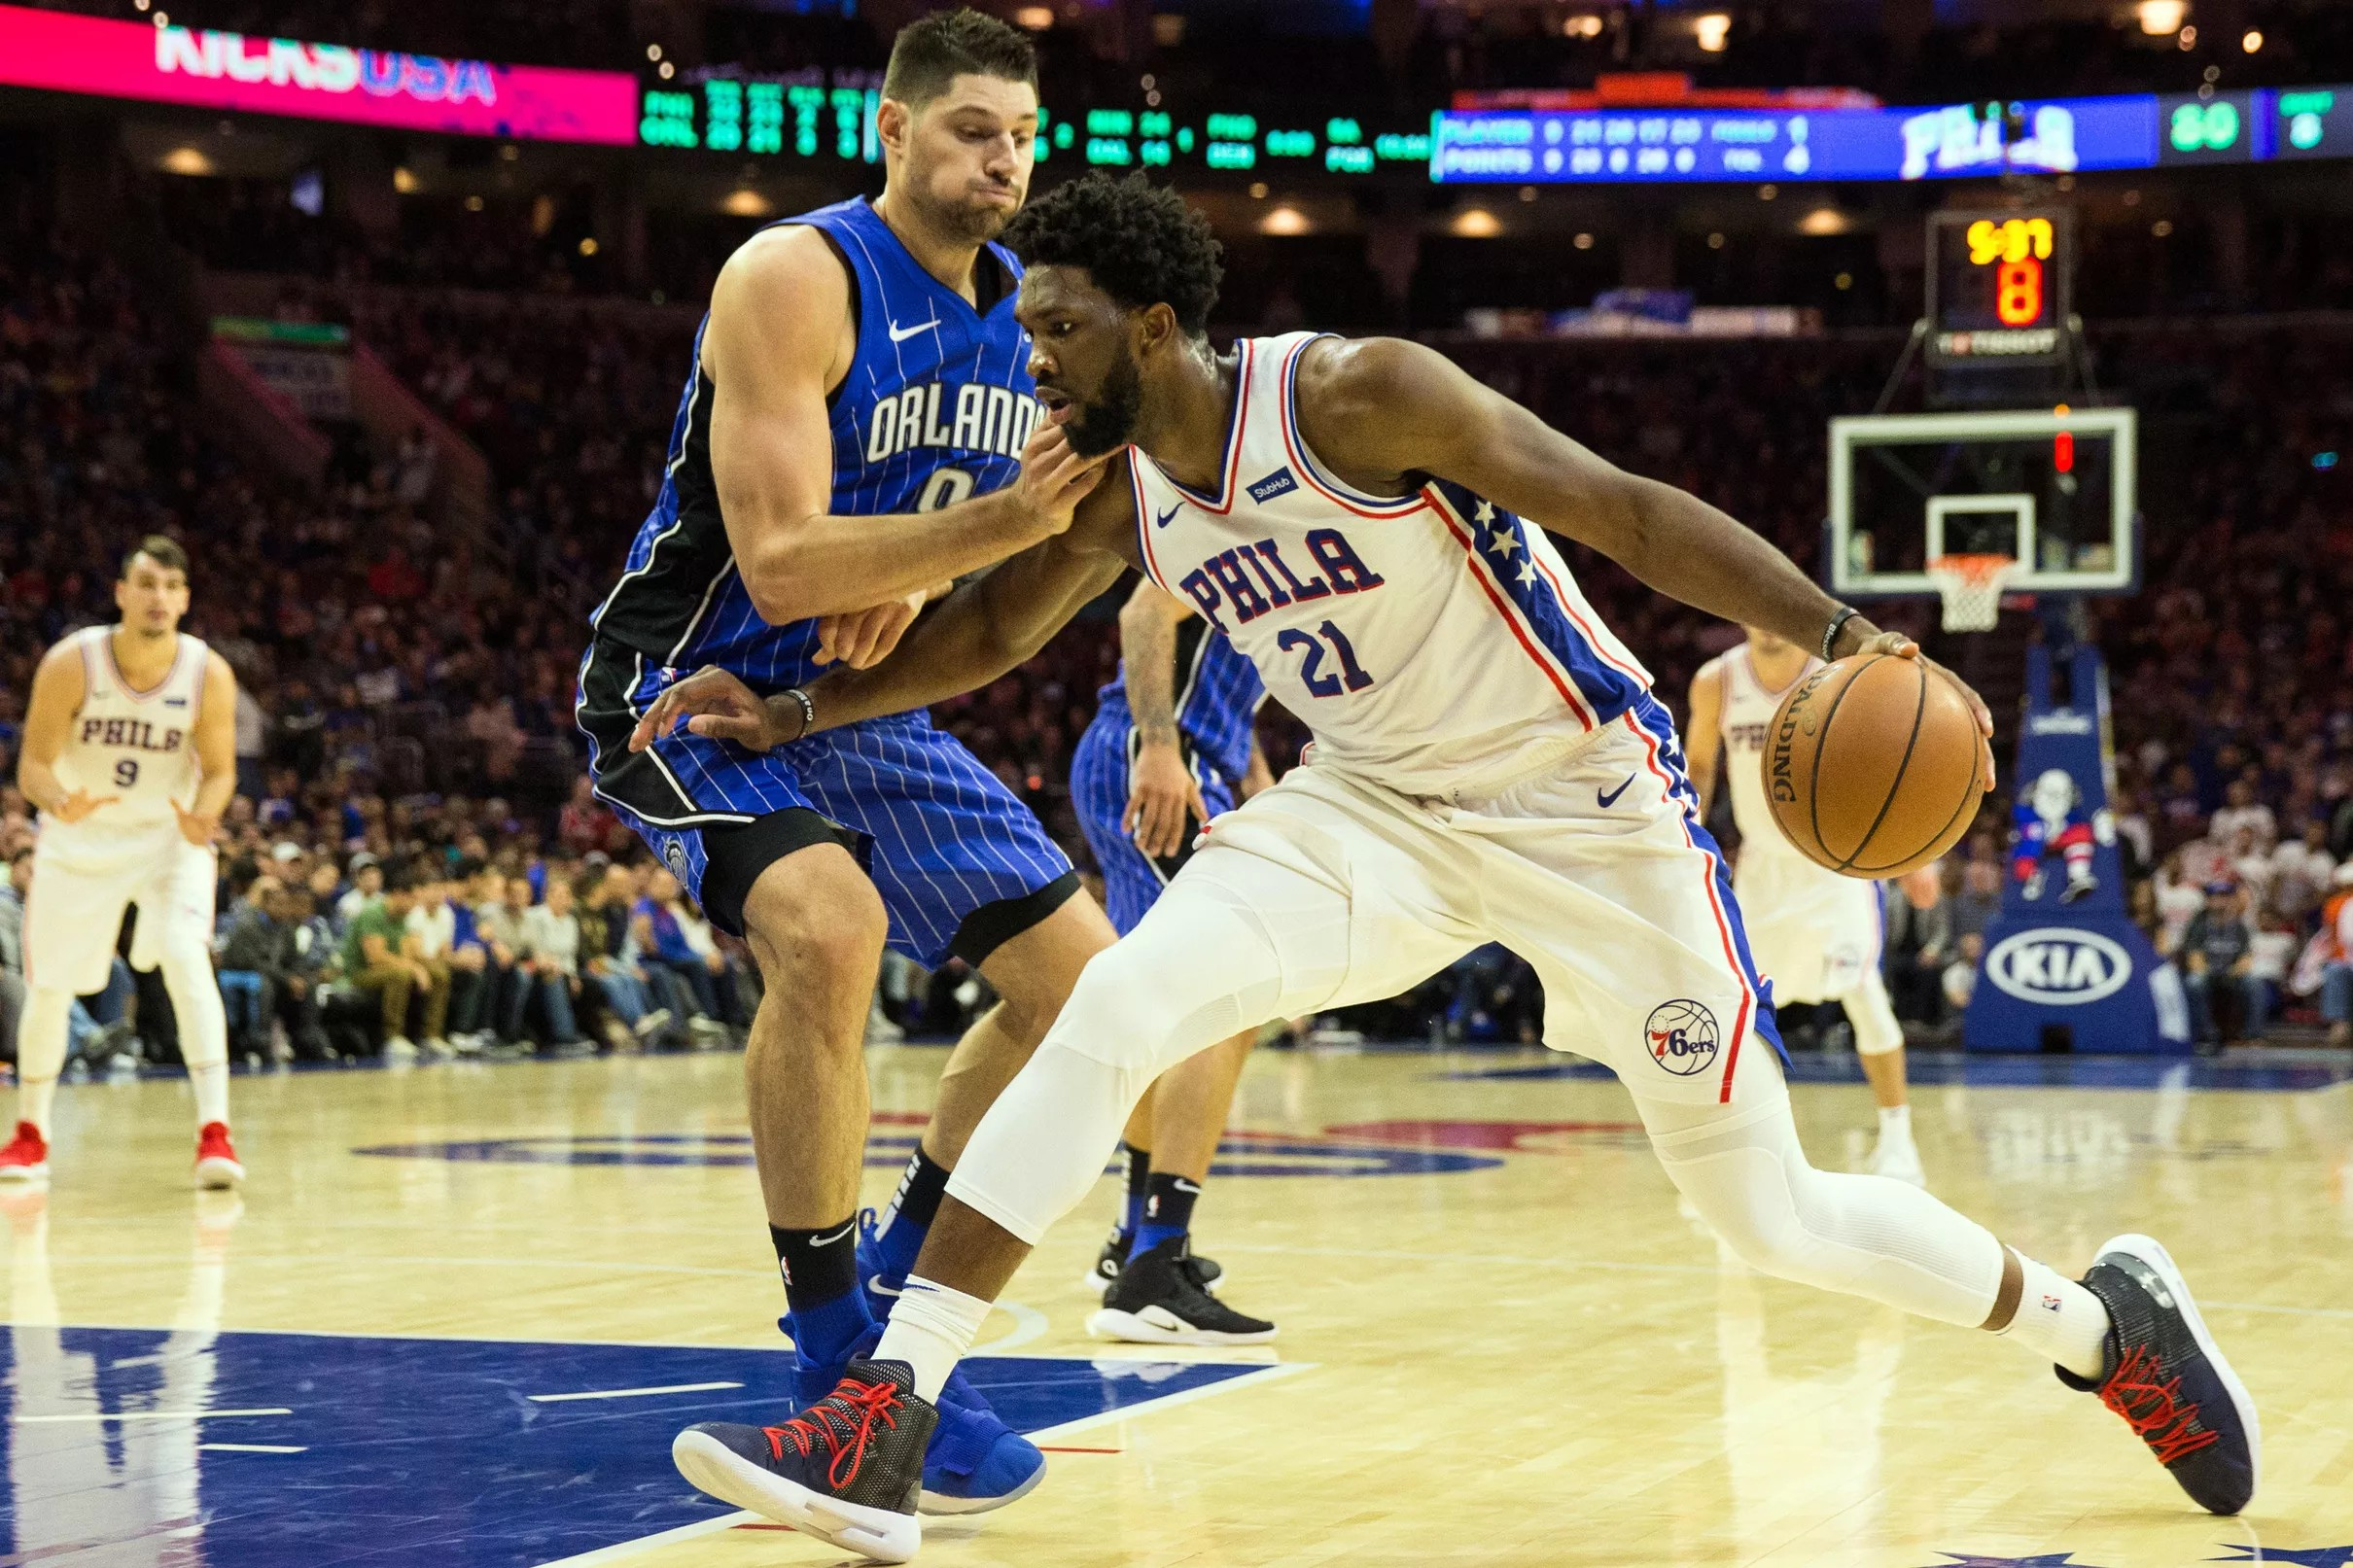 Beyond the box score: Observations from the Sixers' wins